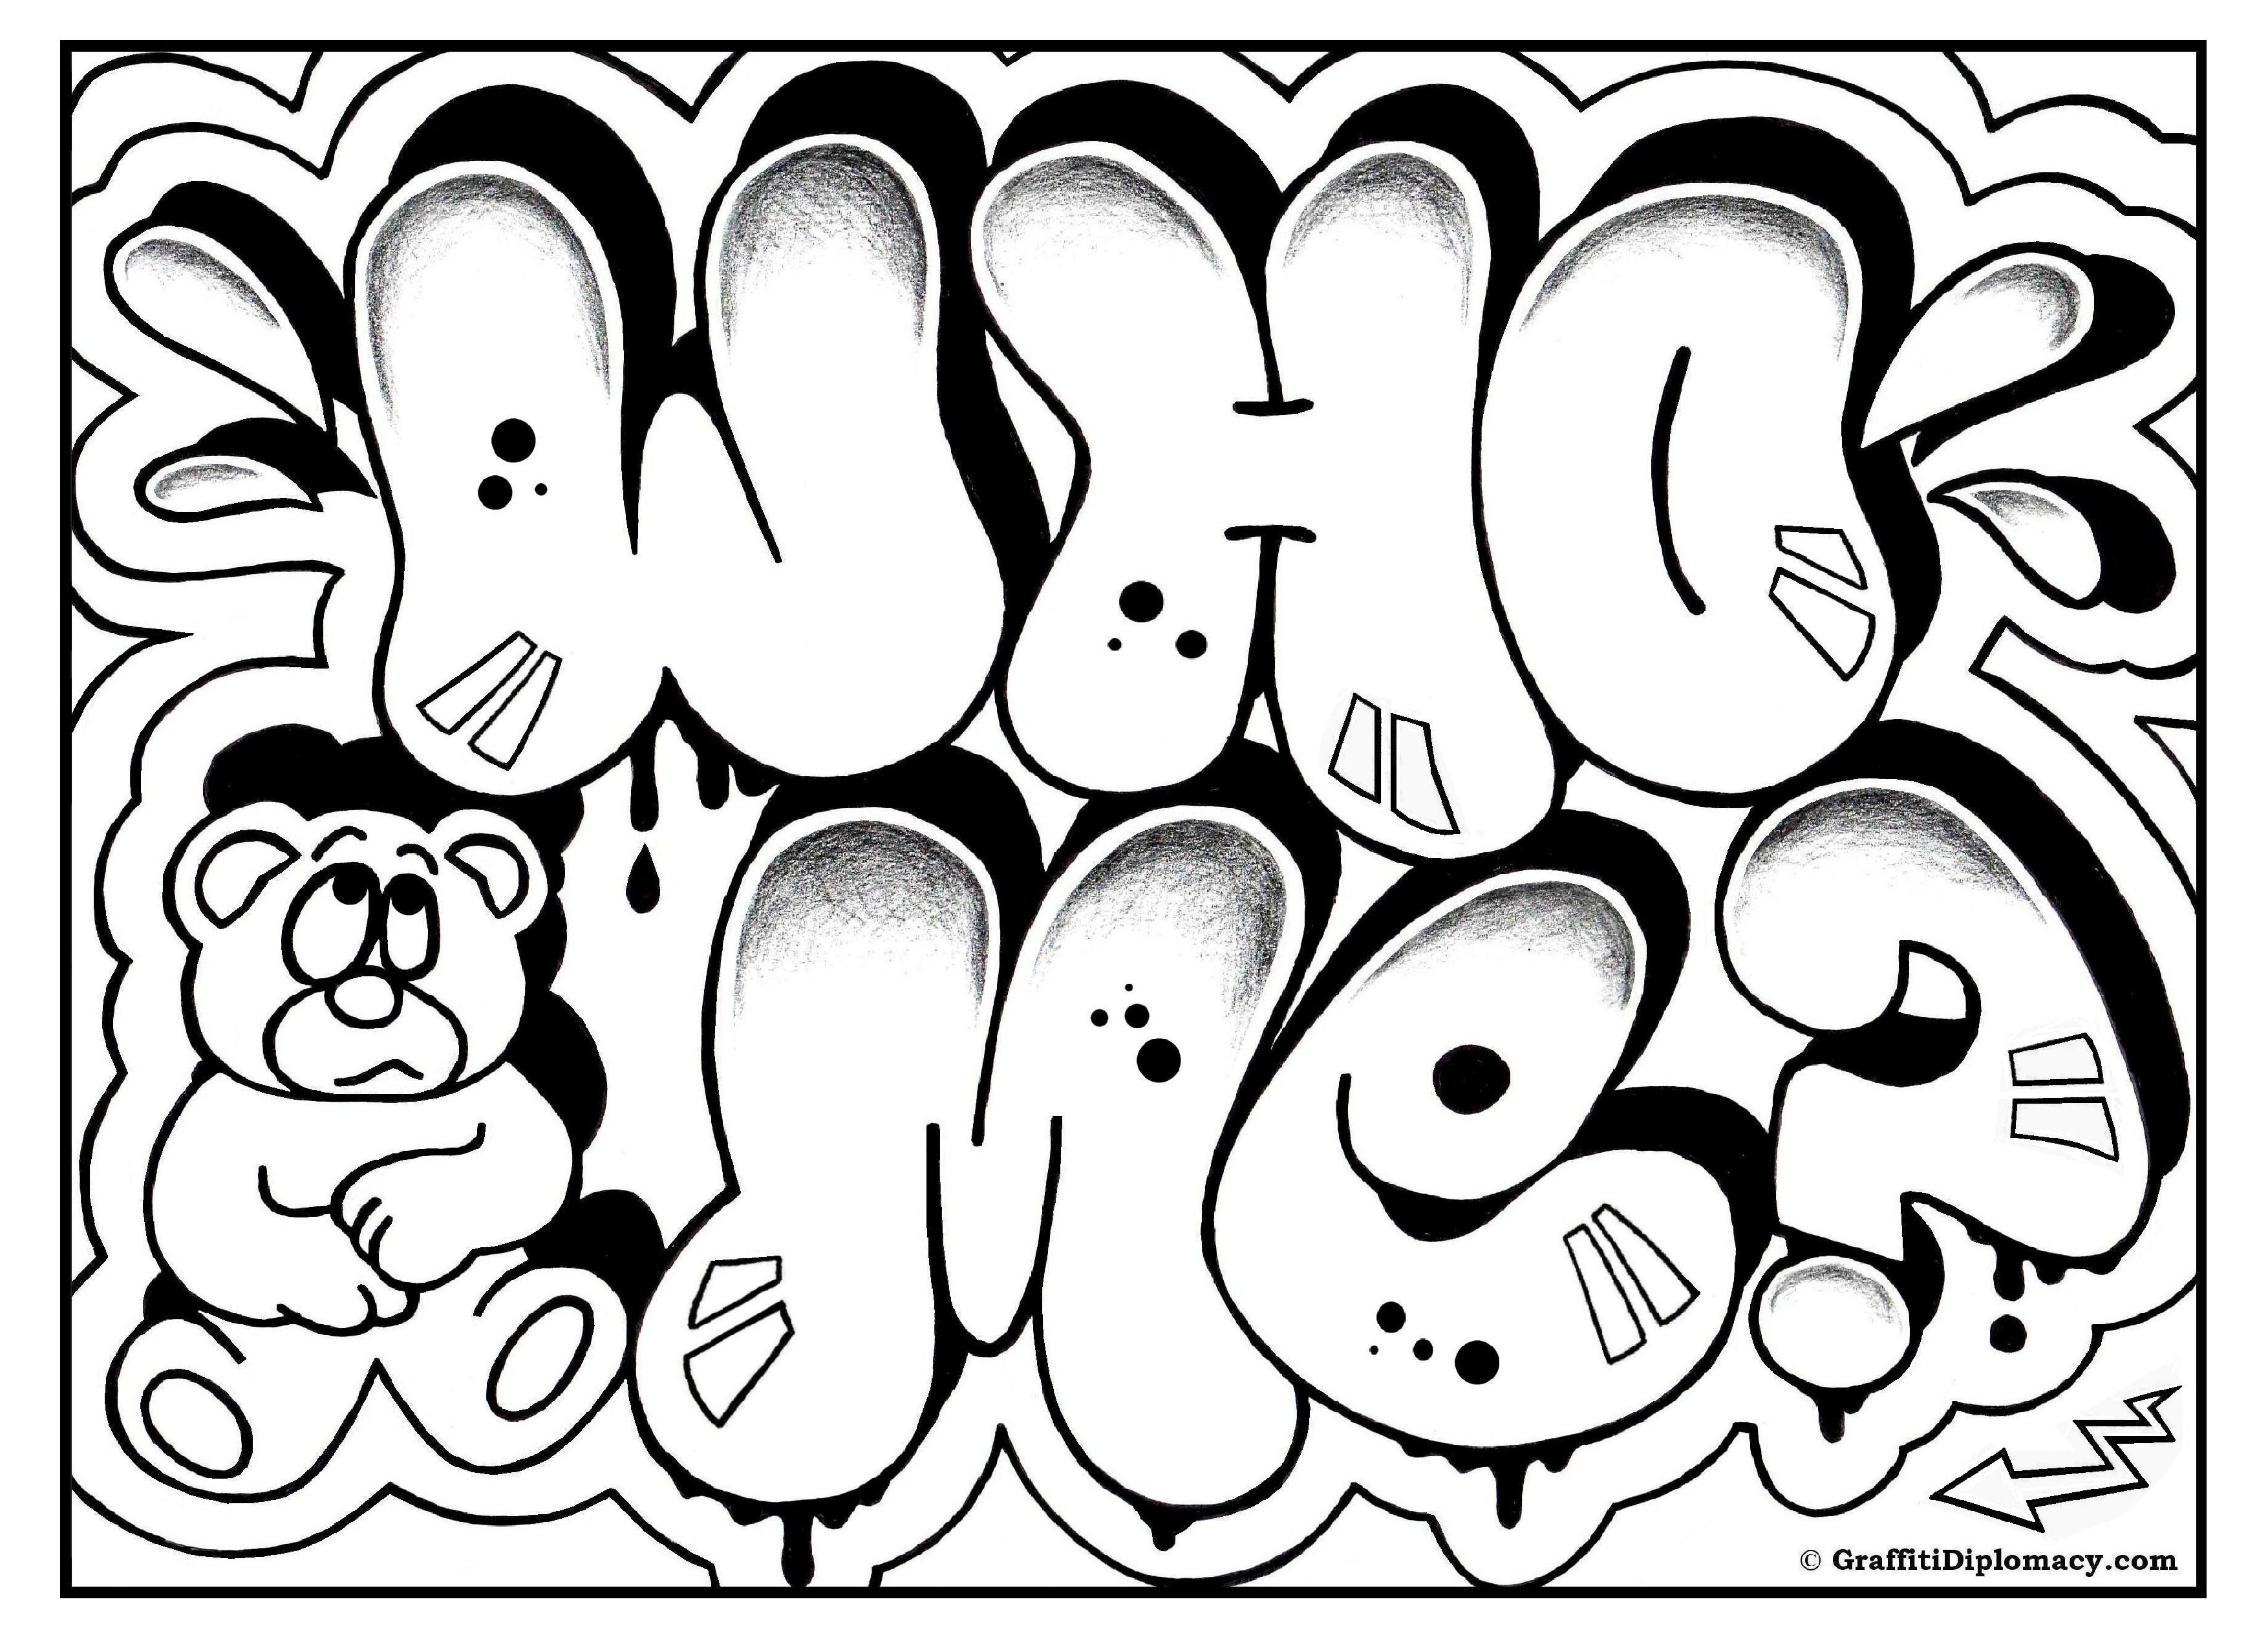 graffiti love coloring coloring pages